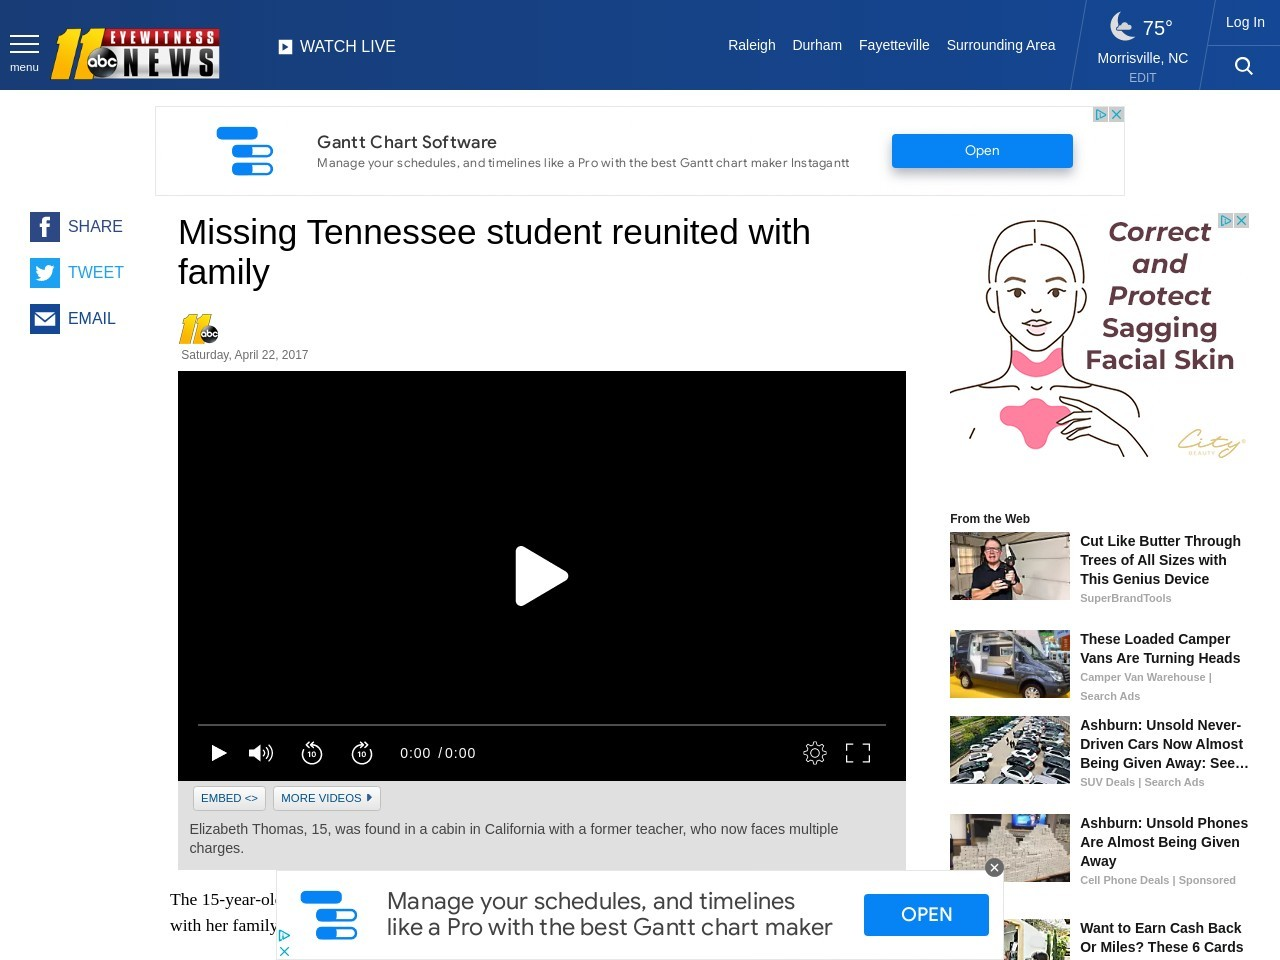 Missing Tennessee student reunited with family